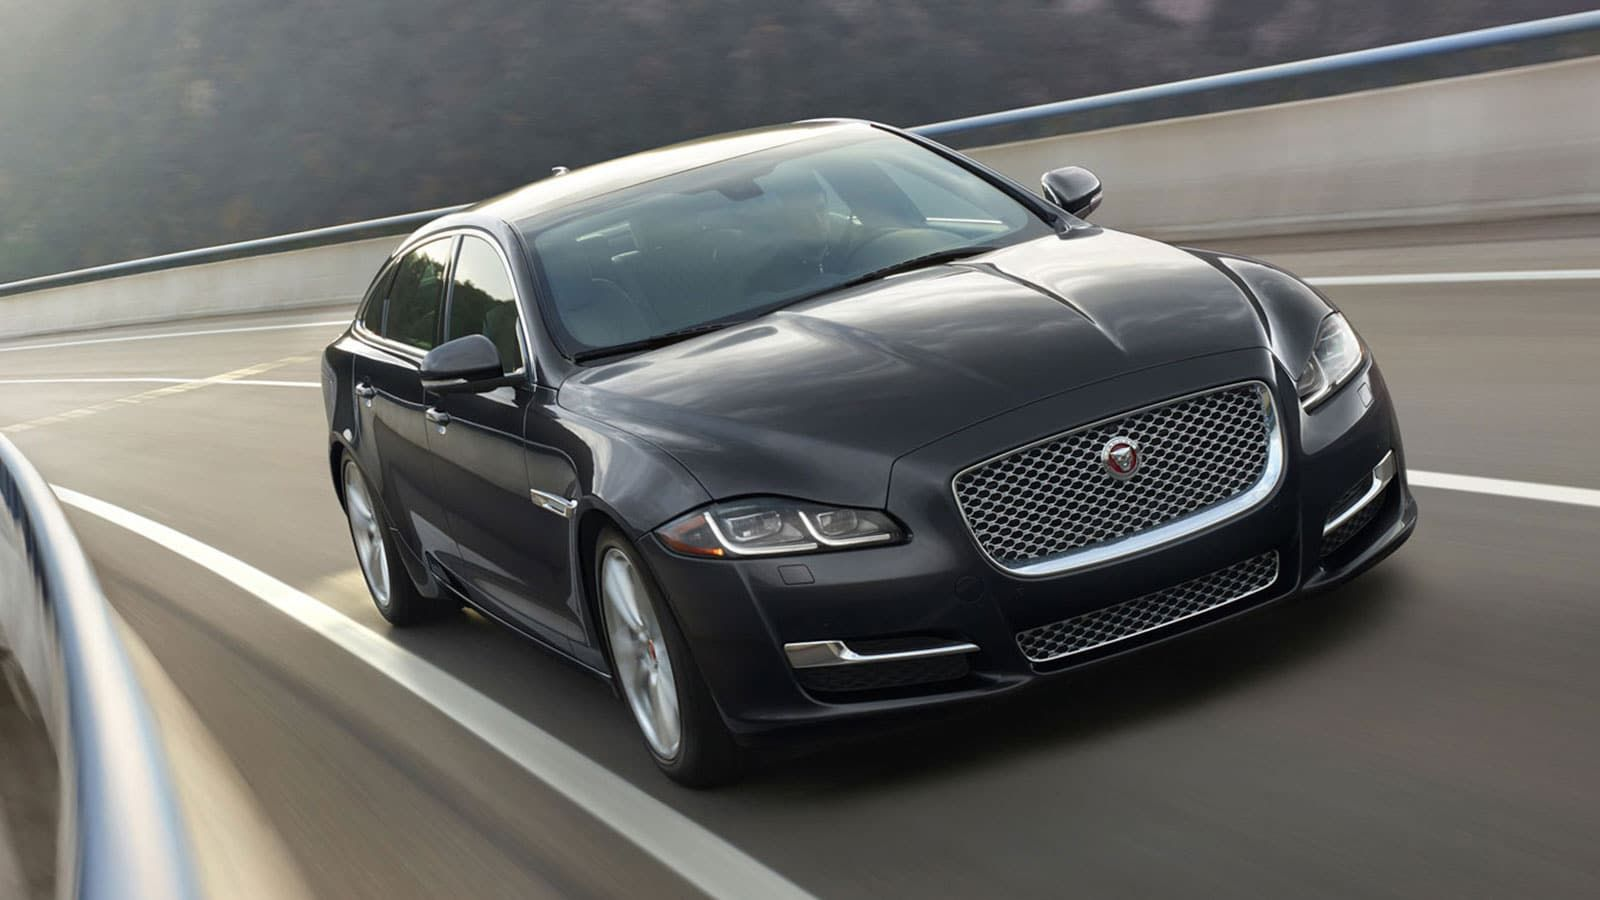 View The Jaguar Xj Photo Gallery Showcasing The Advanced Features And Technology That Offer A One Of A Kind Luxury Driving Experie Jaguar Xj Jaguar Car Jaguar